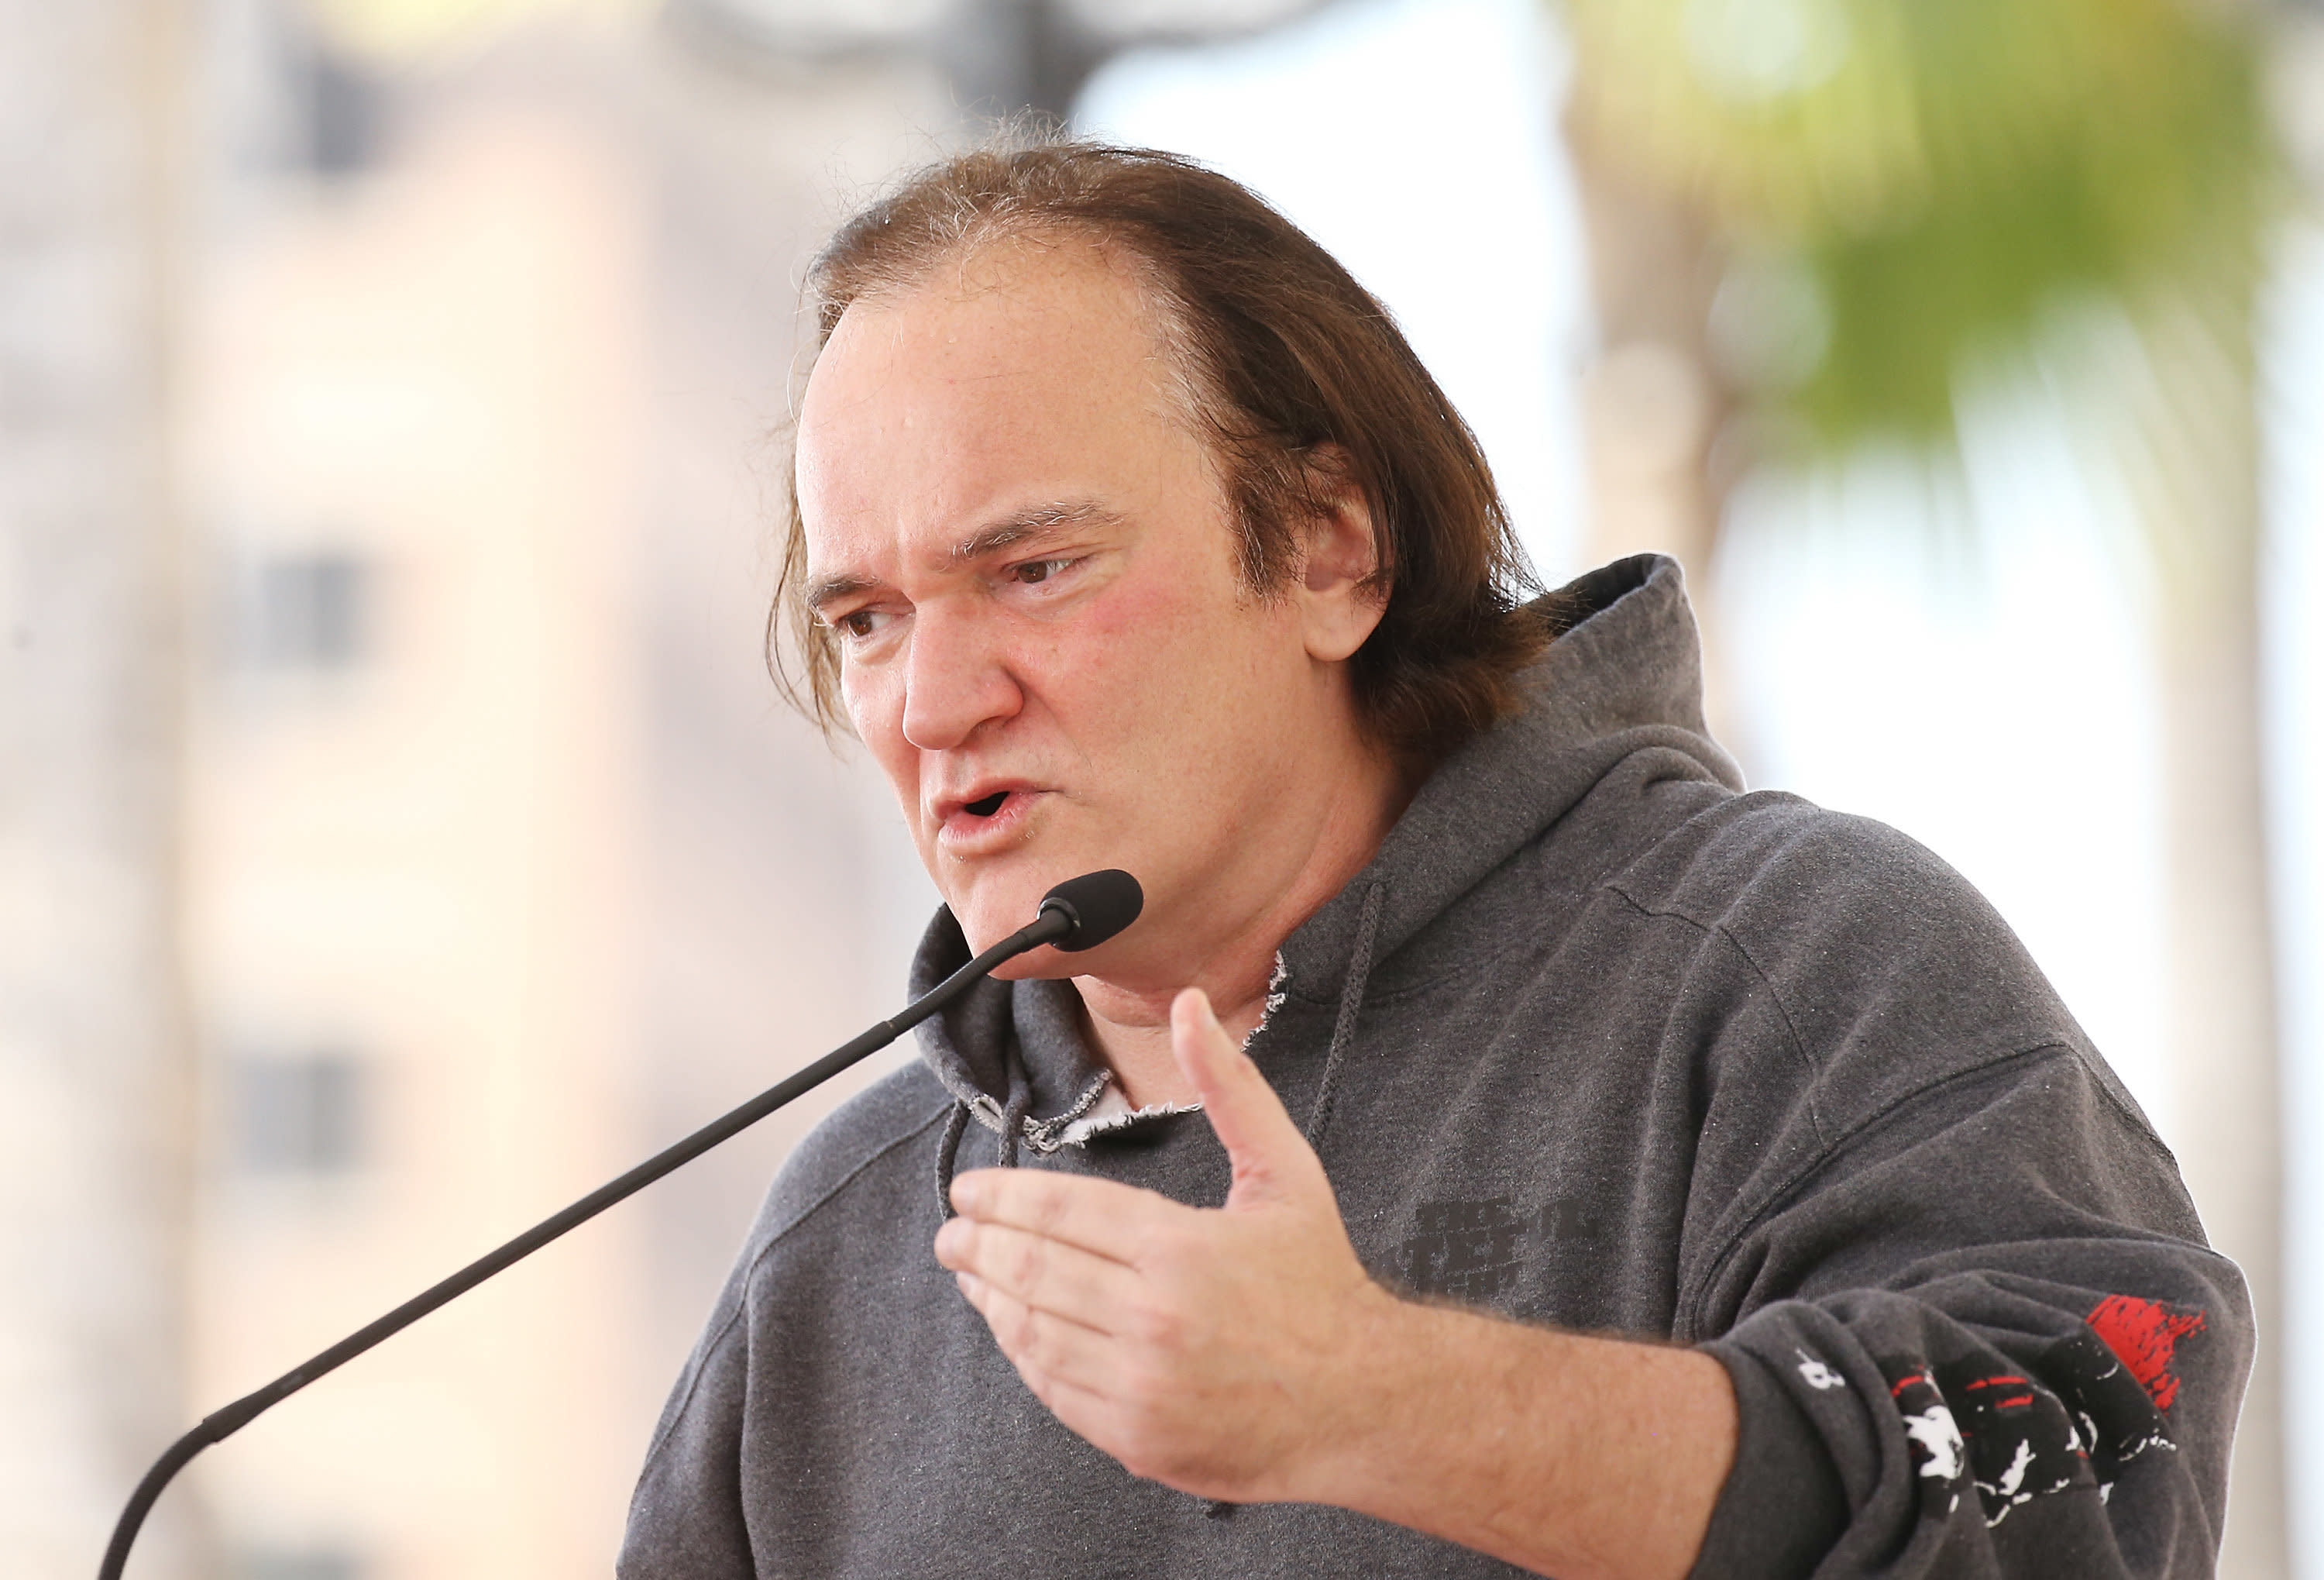 Quentin Tarantino, pictured in May 2017, is getting heat for remarks he made in an old interview with Howard Stern. (Michael Tran via Getty Images)